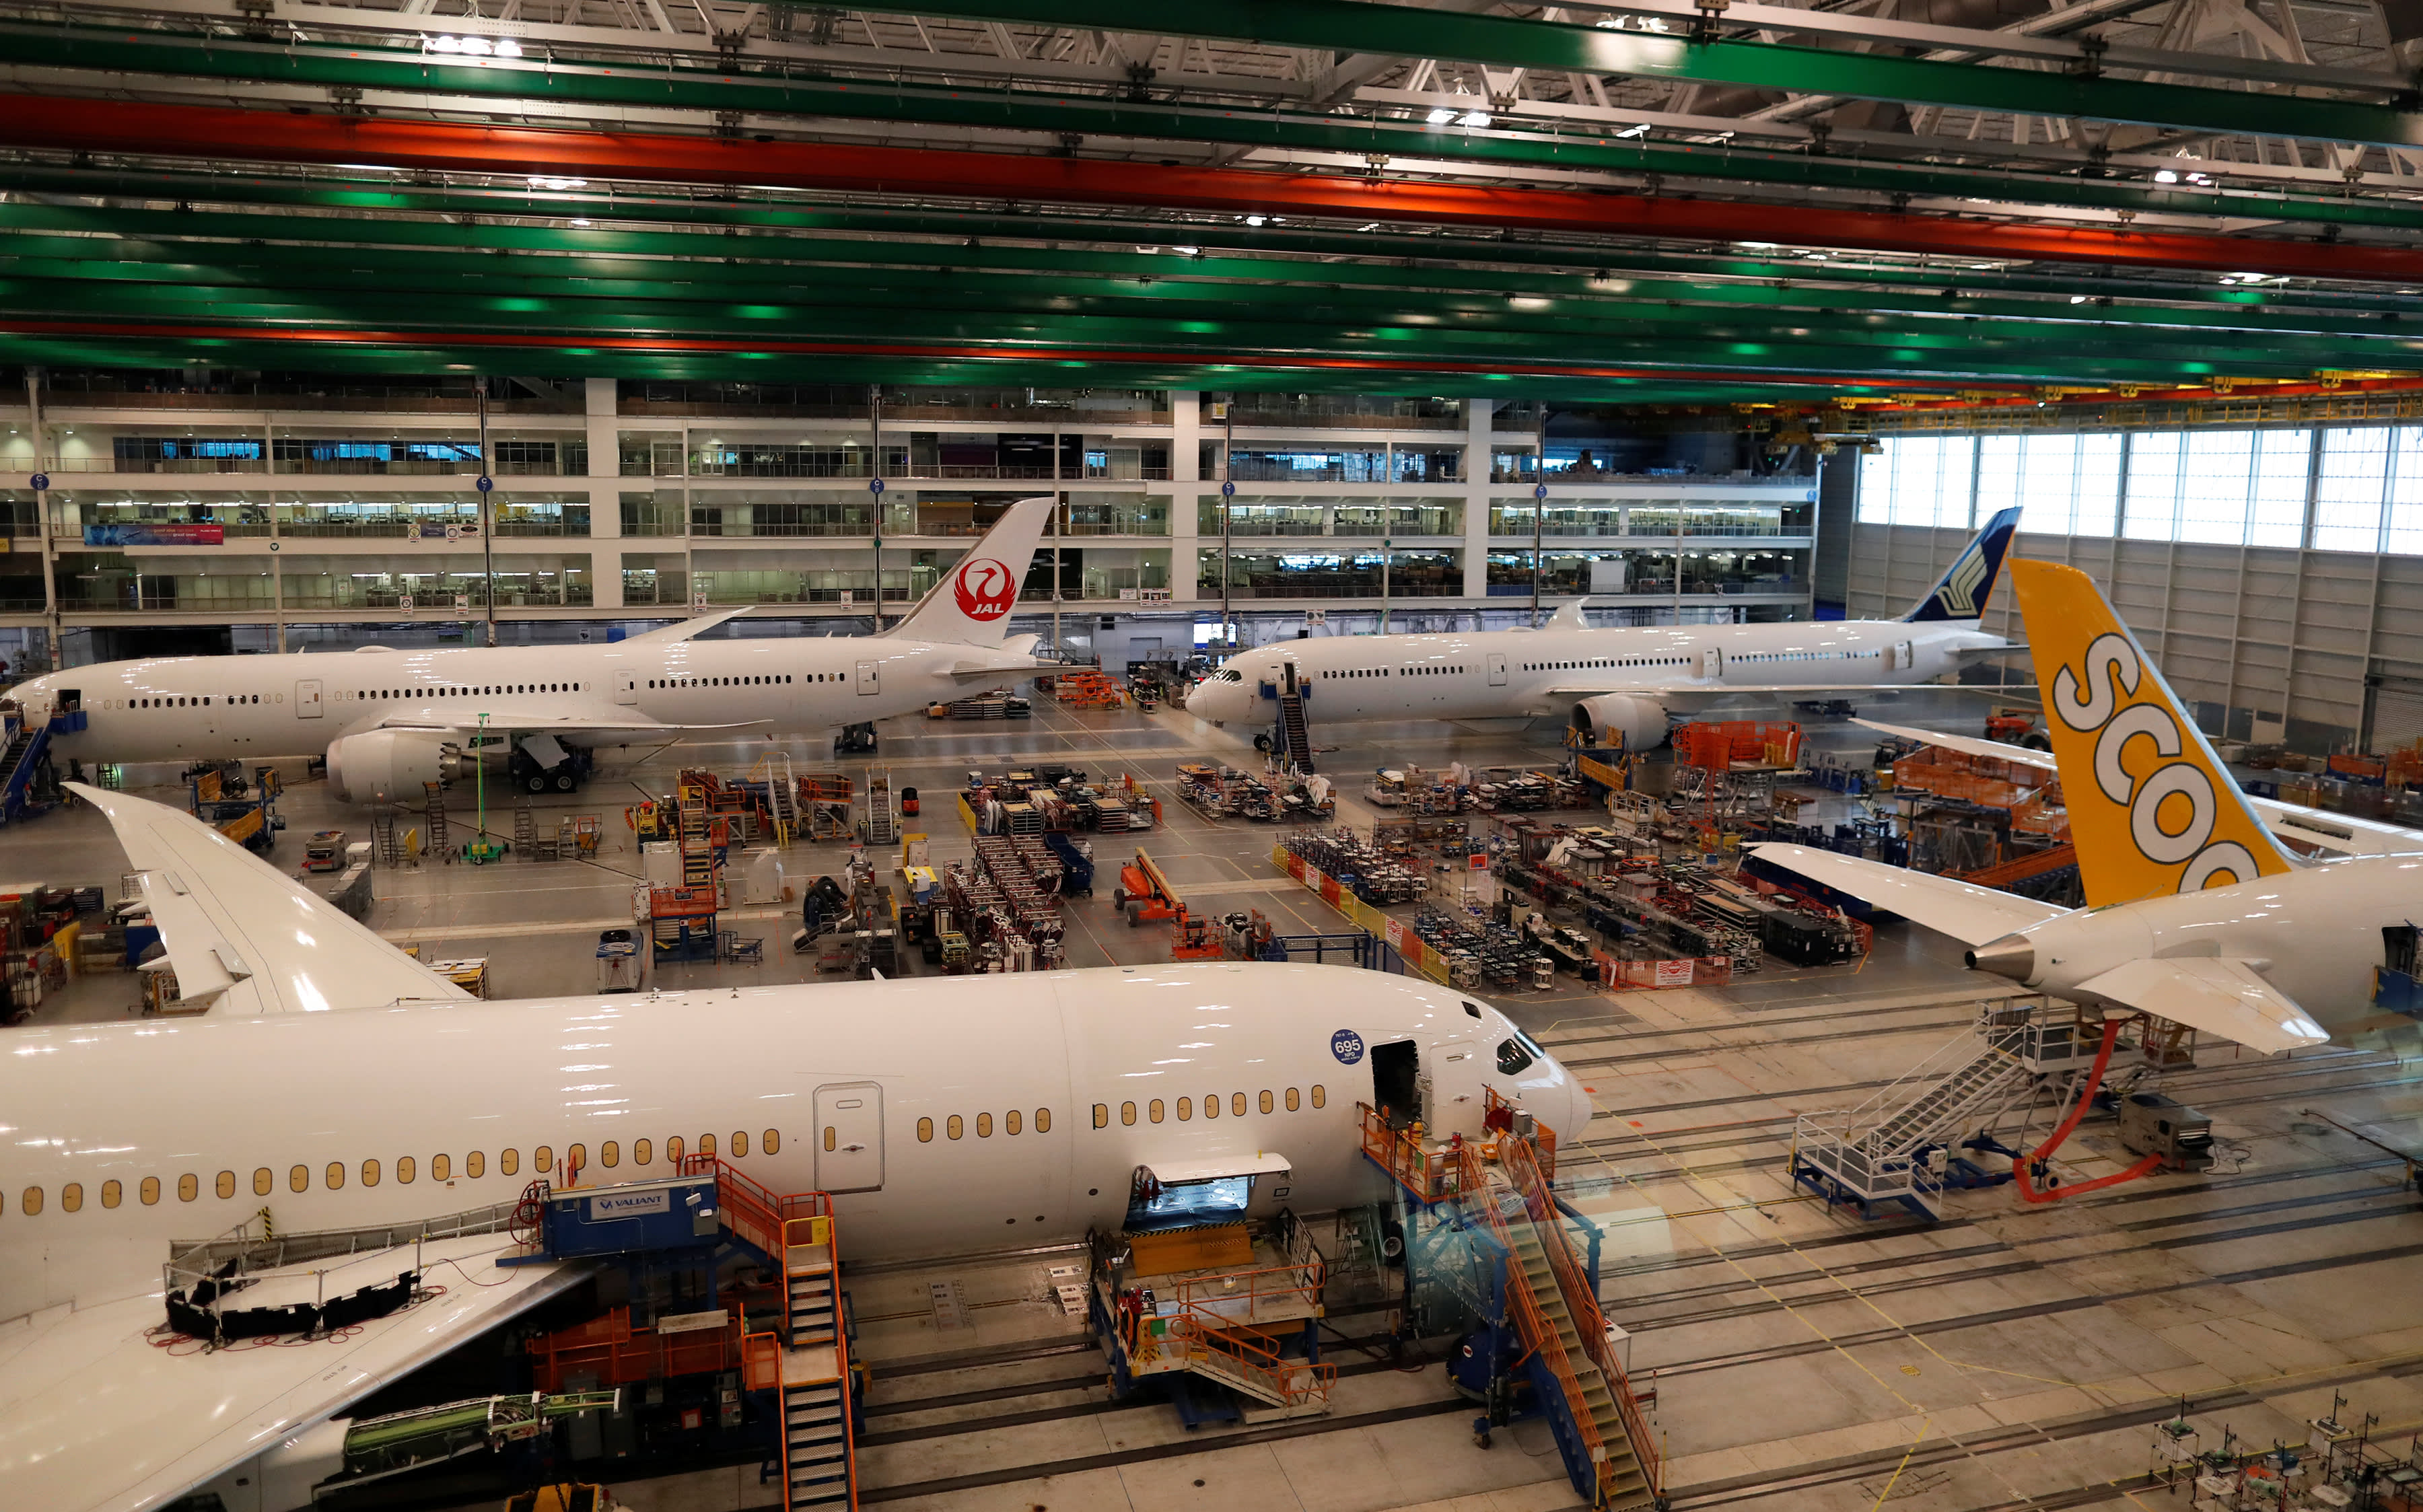 FAA says Boeing will fix new production defect on 787 Dreamliners before deliveries resume